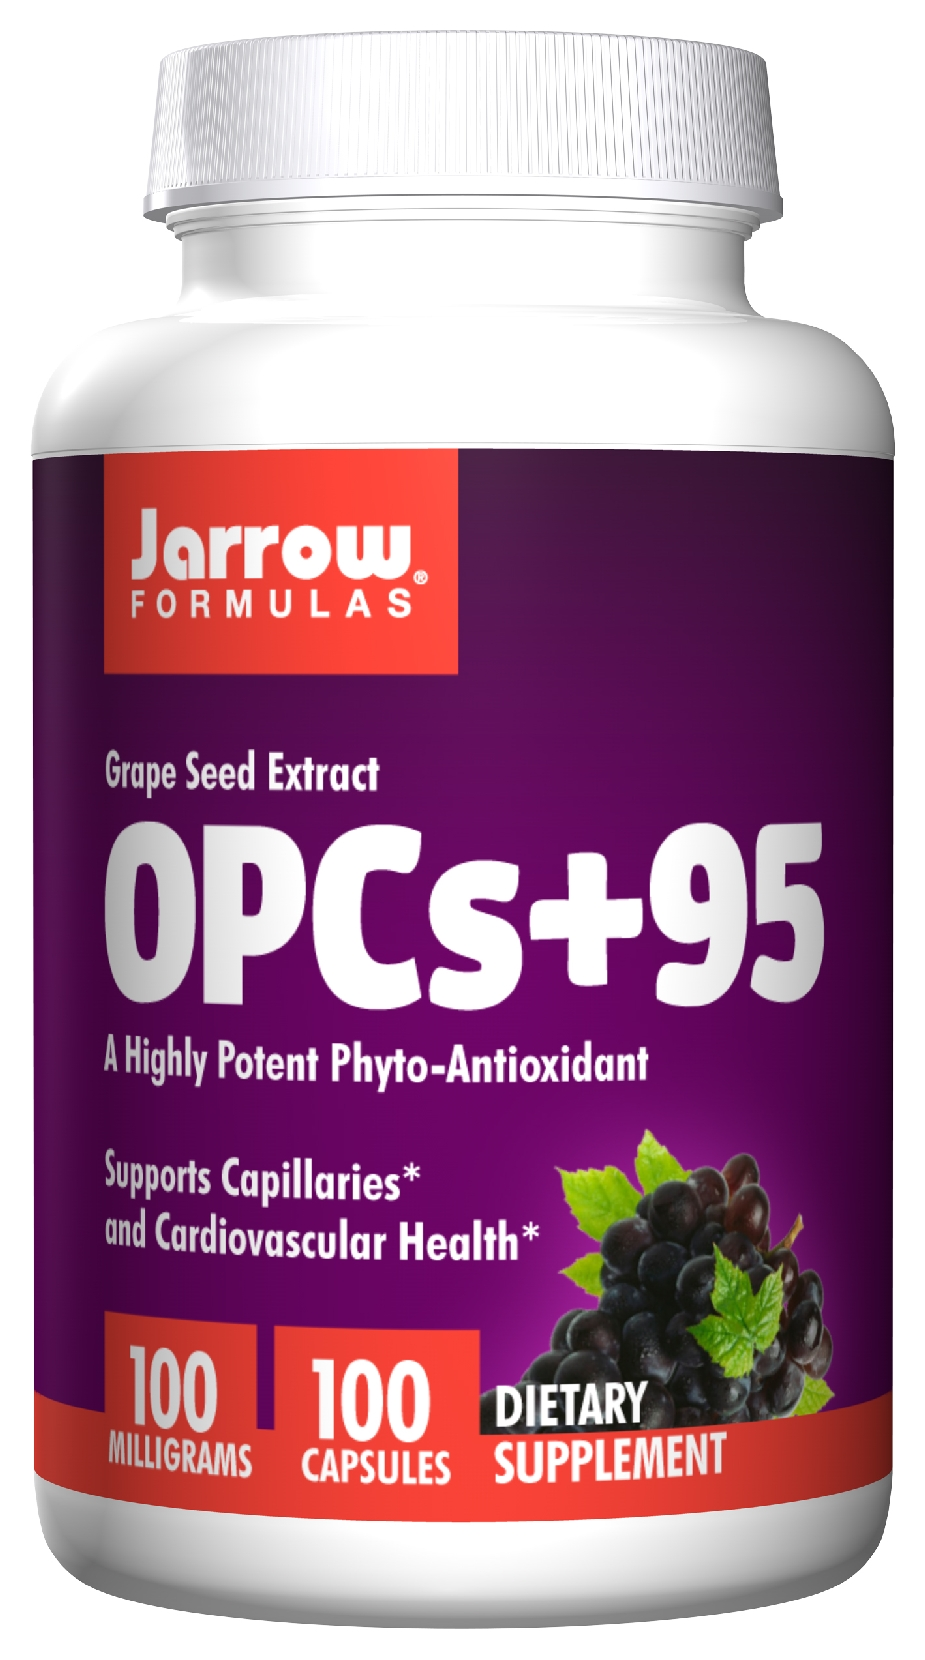 OPCs + 95 Grape Seed Extract 100 mg 100 caps by Jarrow Formulas